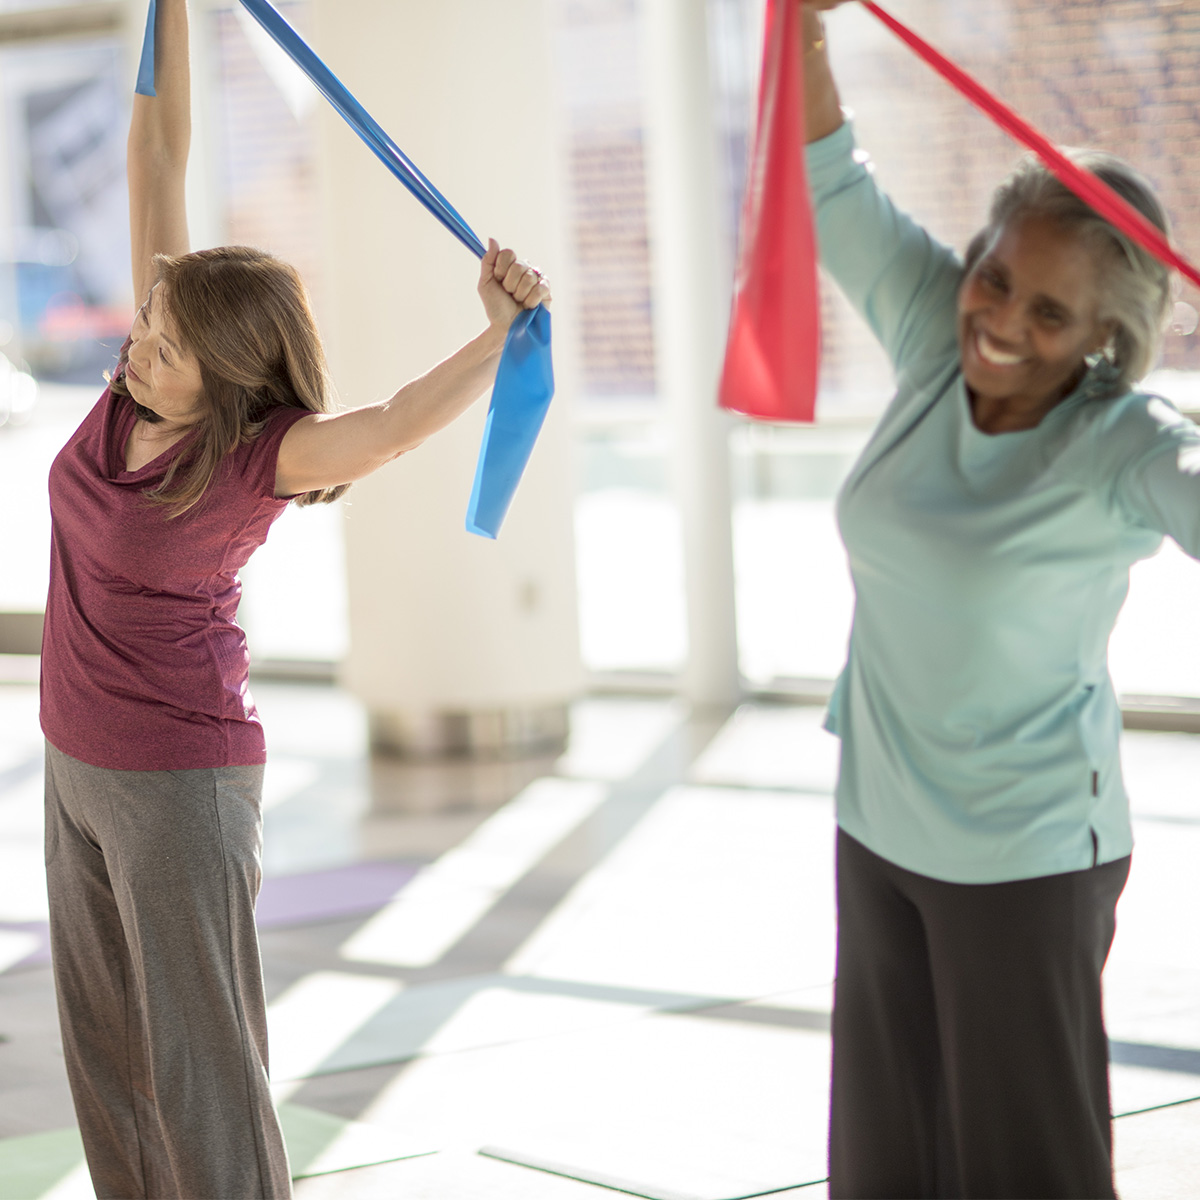 Participants in an exercise class bend to the side while stretching an elastic band over their heads.